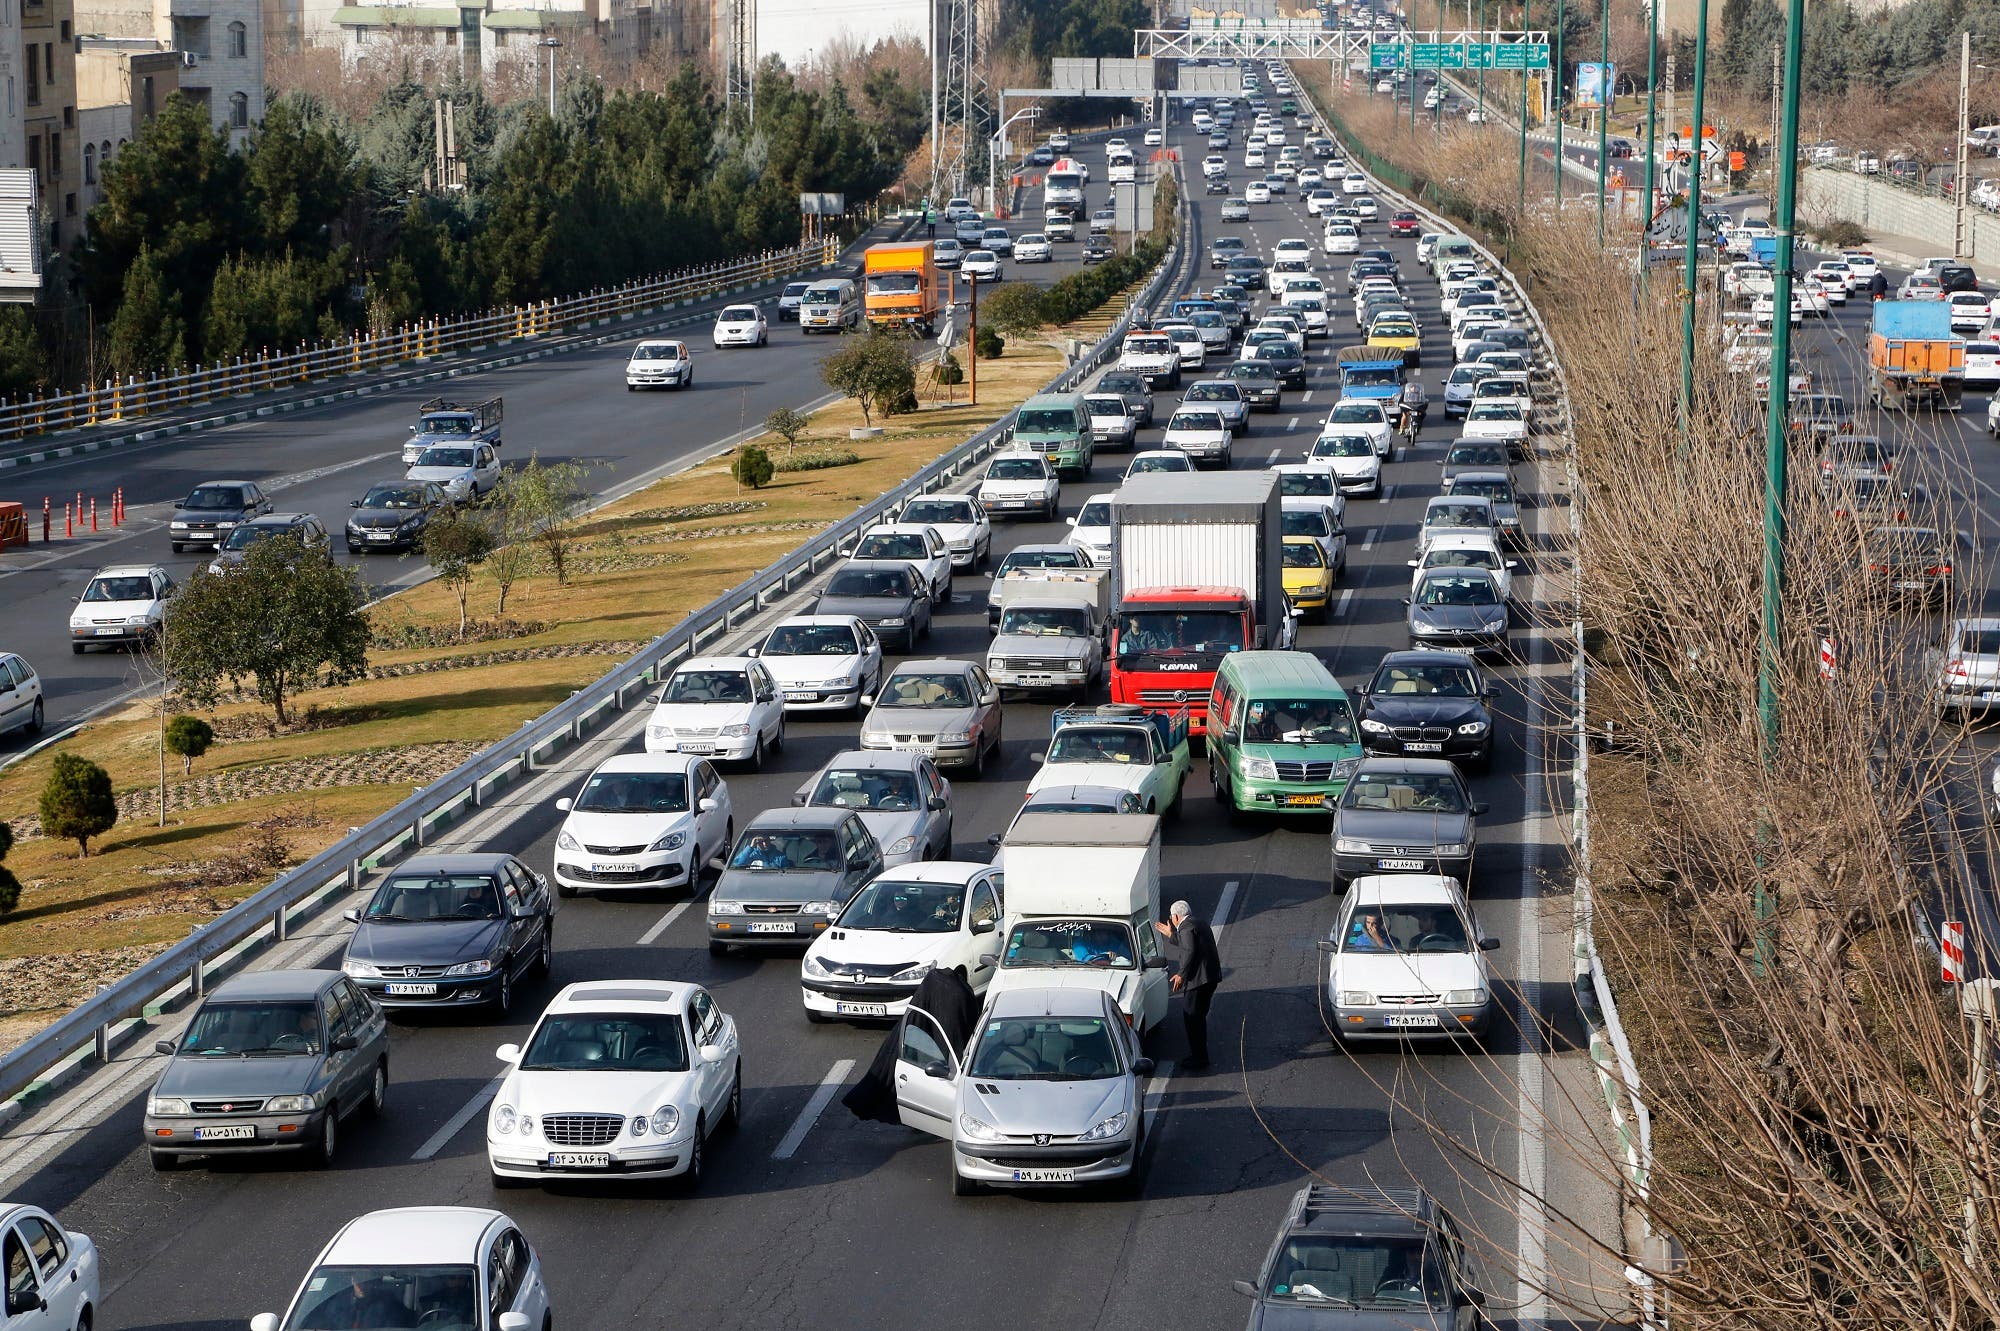 A general view of the traffic on a main highway in Tehran on January 3, 2018. (AFP)